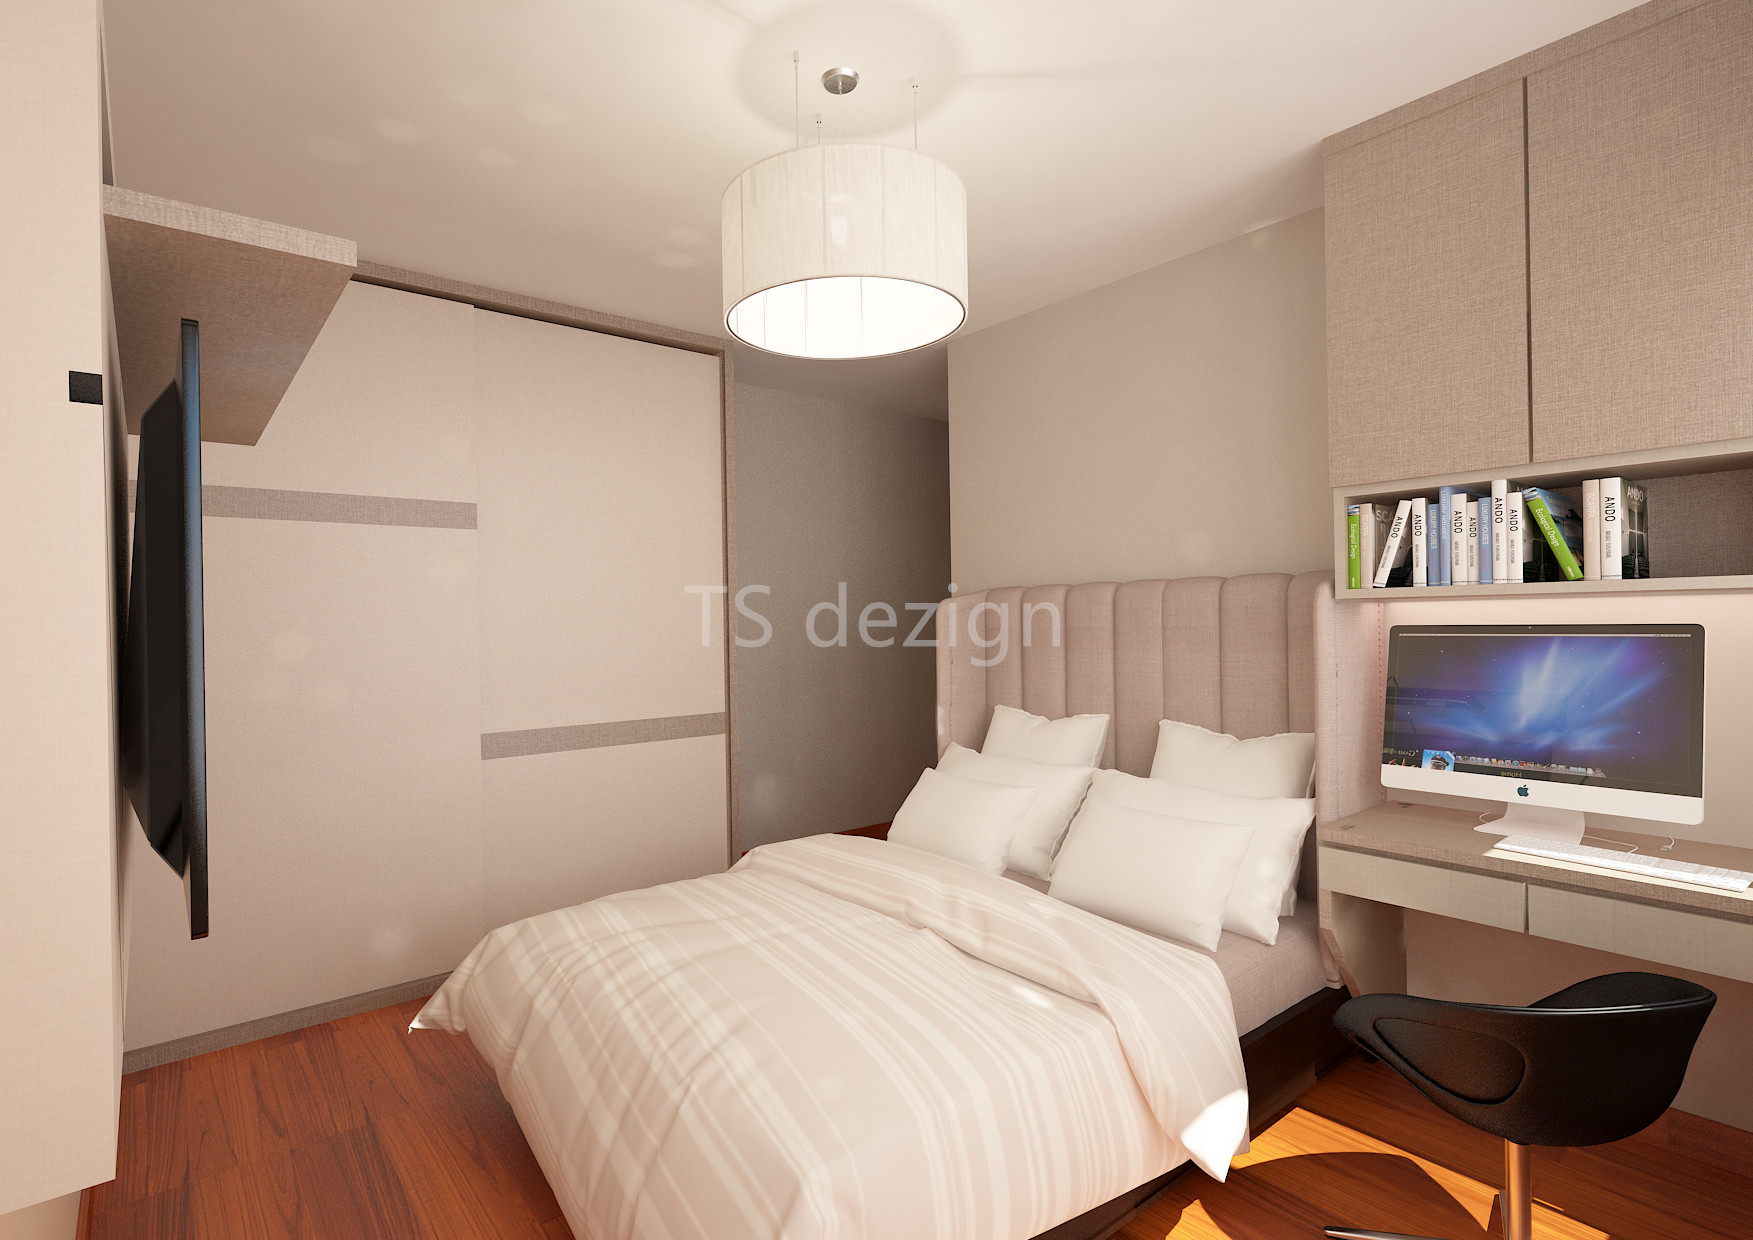 Ts dezign anchorvale cove hdb bto 4 room for Bedroom ideas hdb